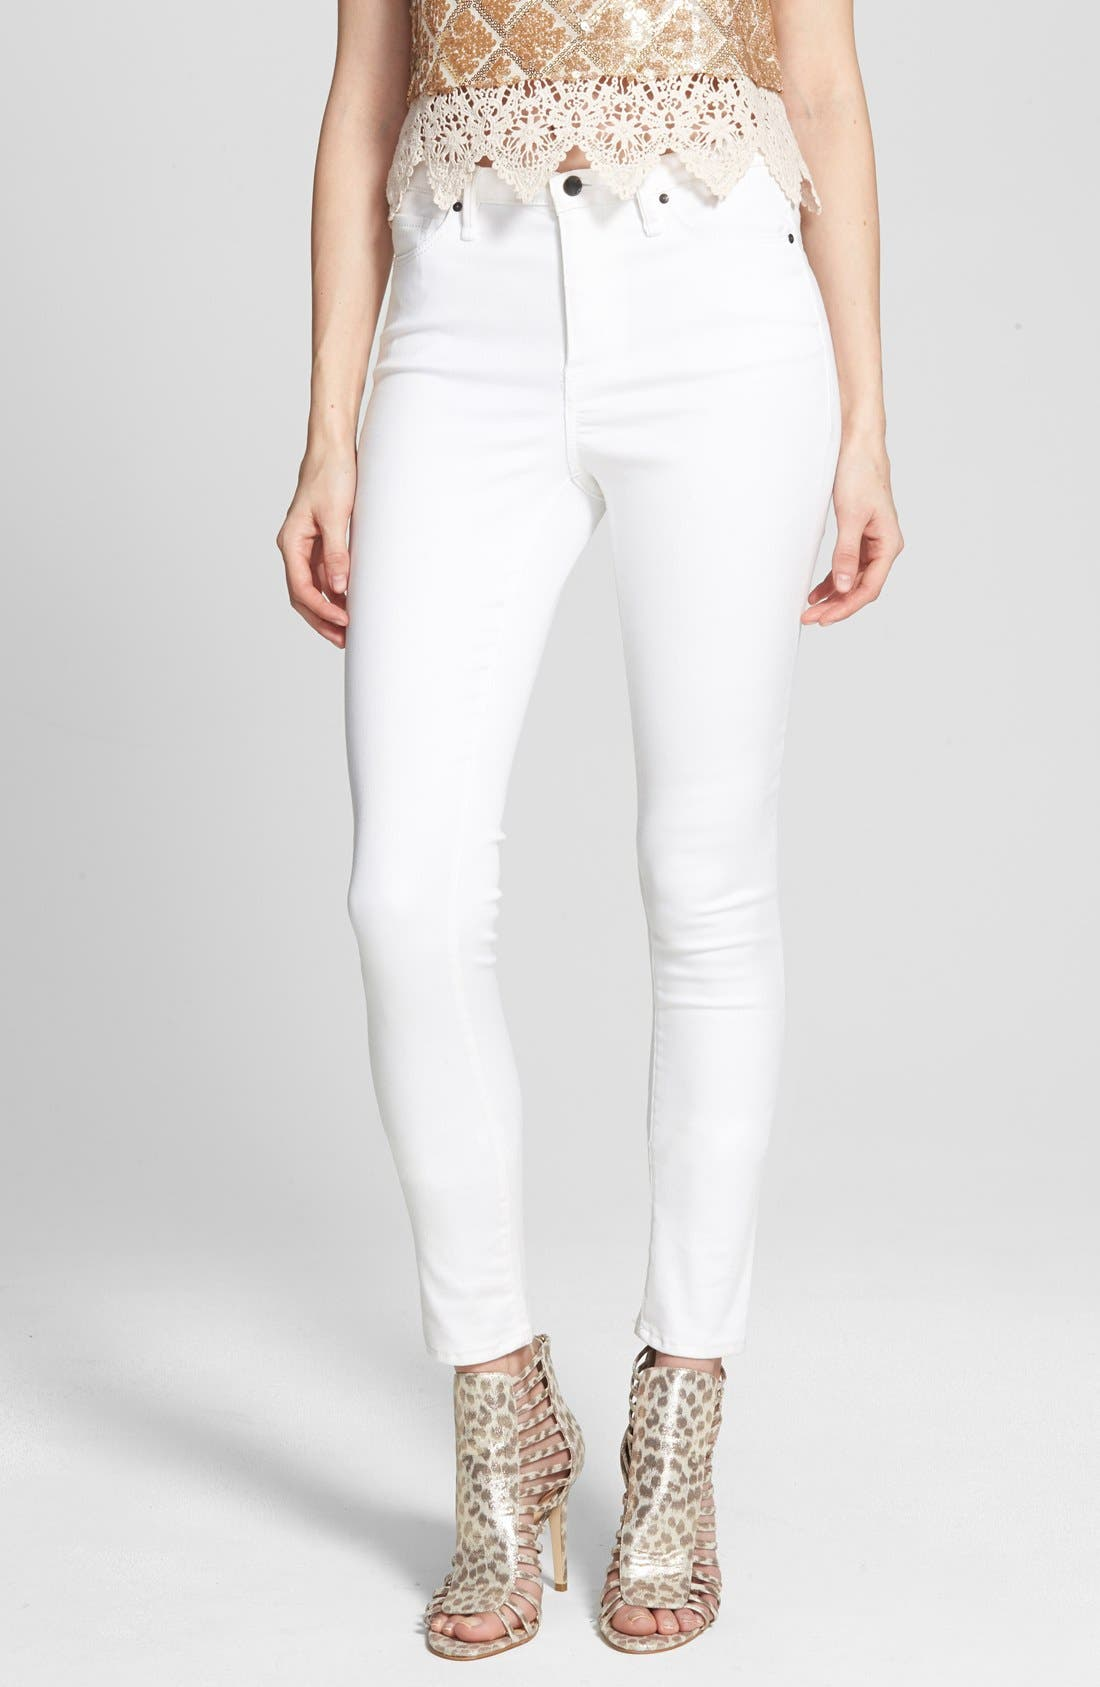 Alternate Image 1 Selected - Kiind Of 'Empower' High Rise Denim Leggings (Rinse Silk Road)